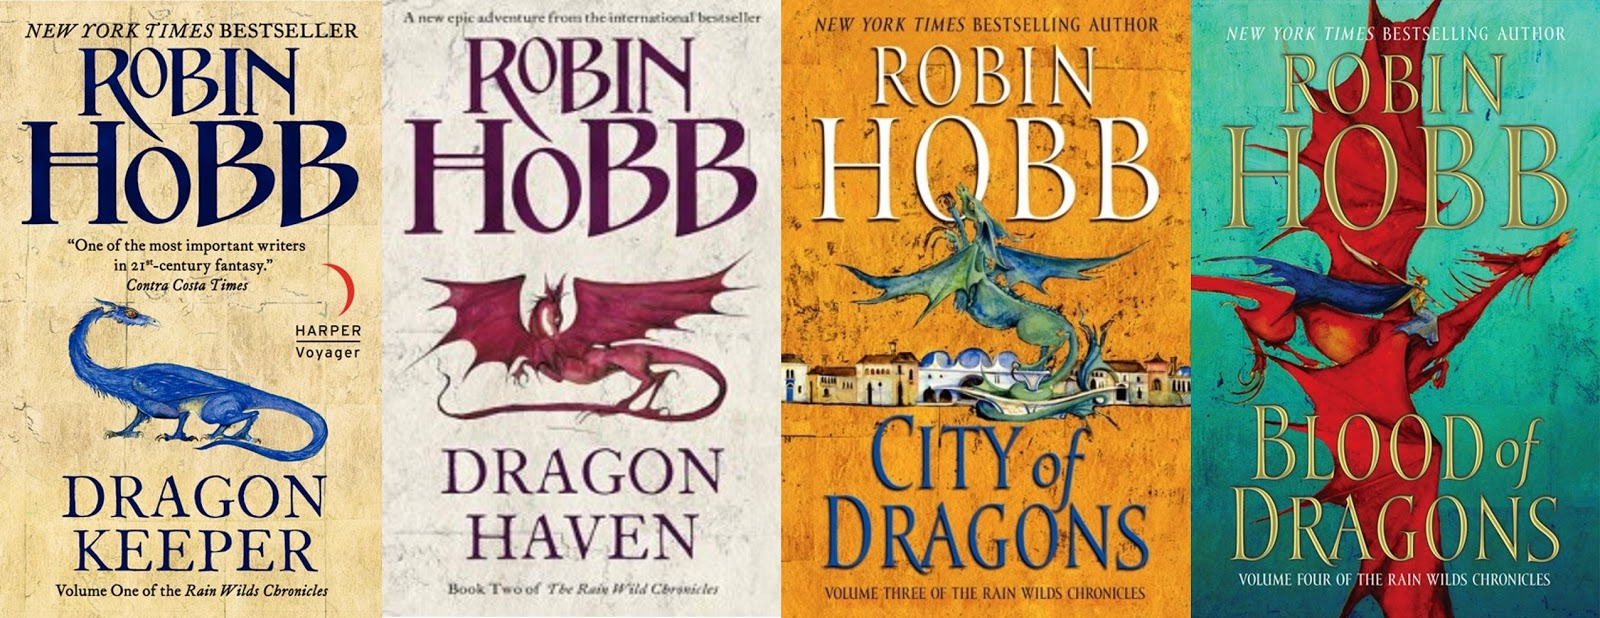 All 4 book covers of Rain Wilds Chronicles by Robin Hobb